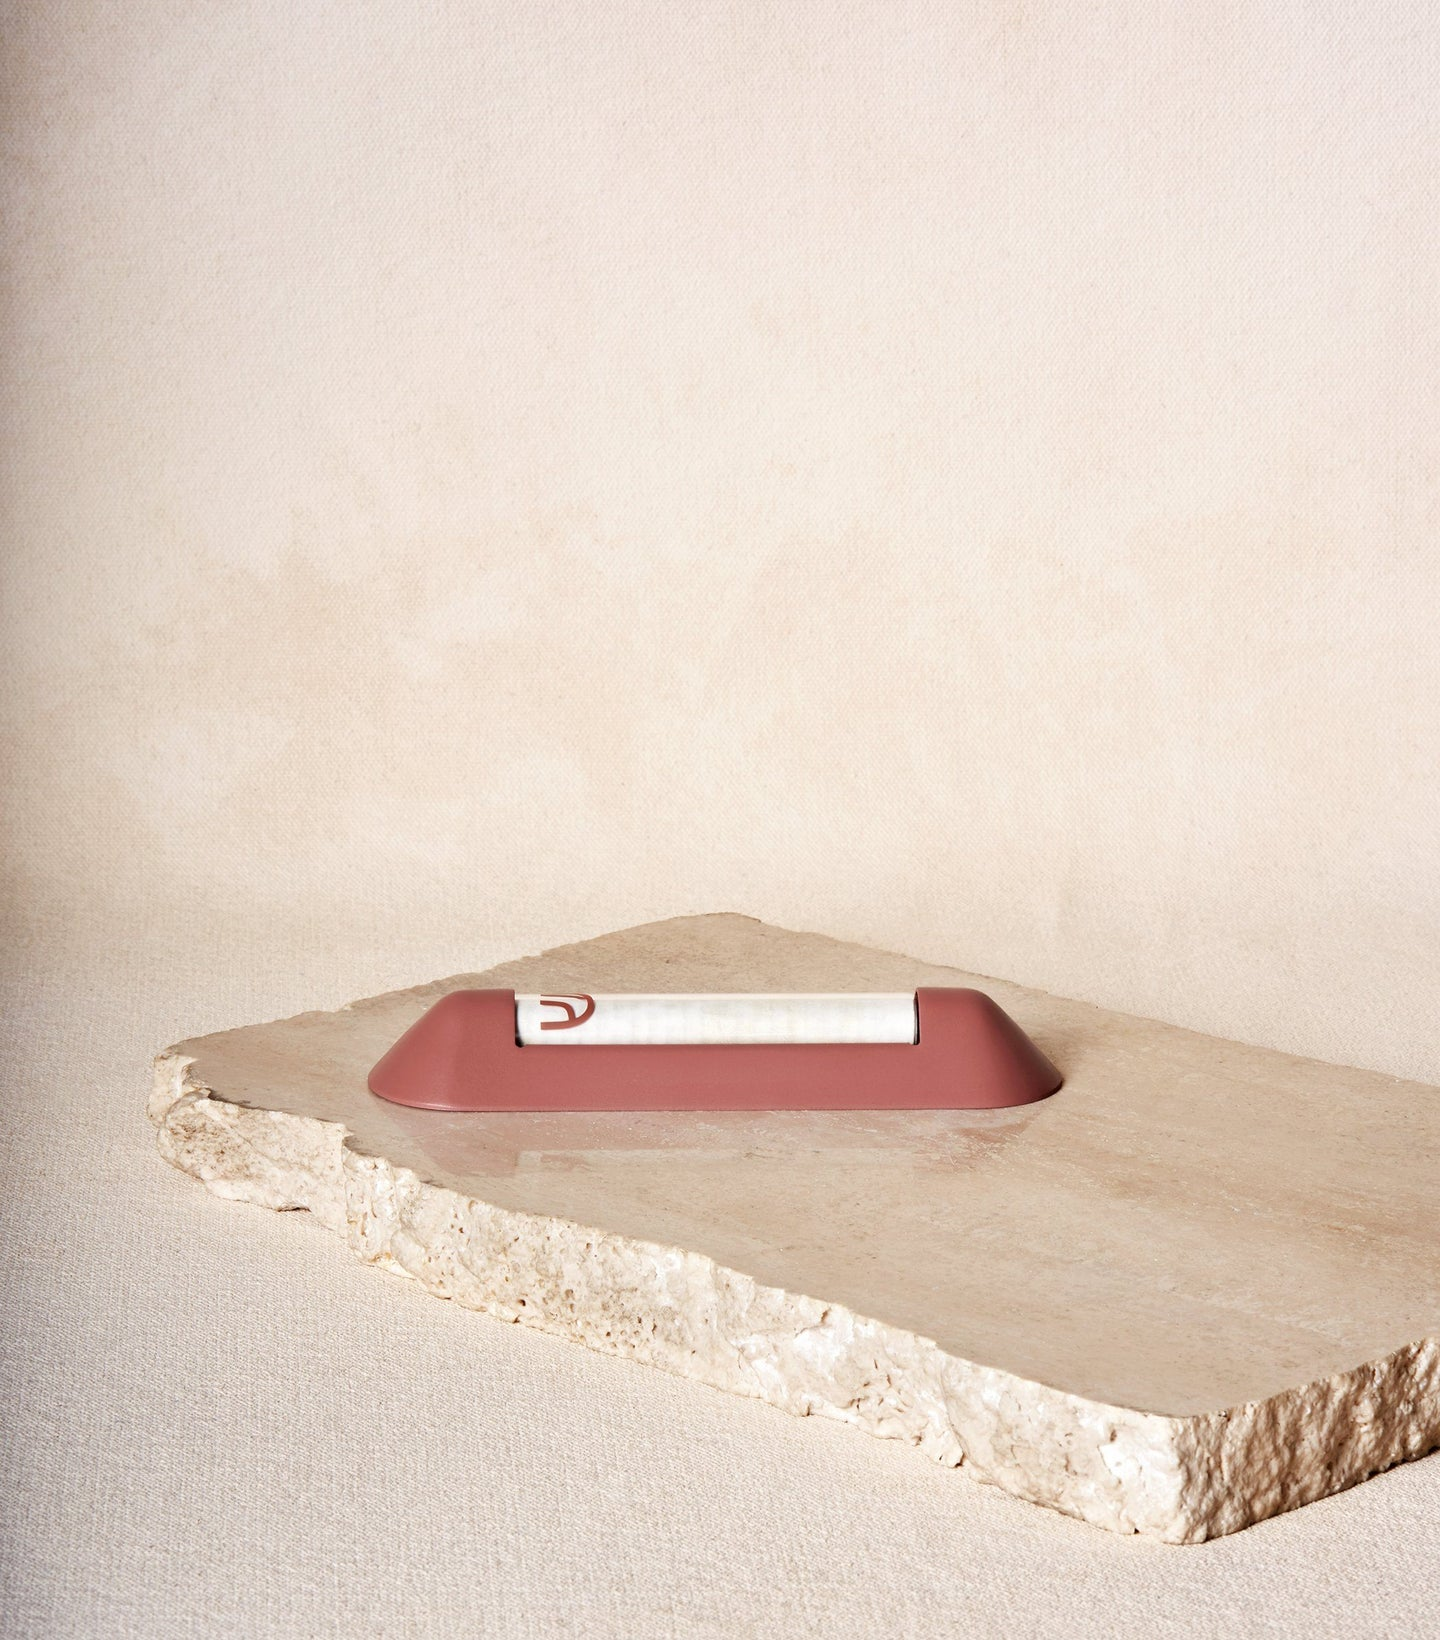 Load image into Gallery viewer, Shelter Mezuzah in Clay Red side view